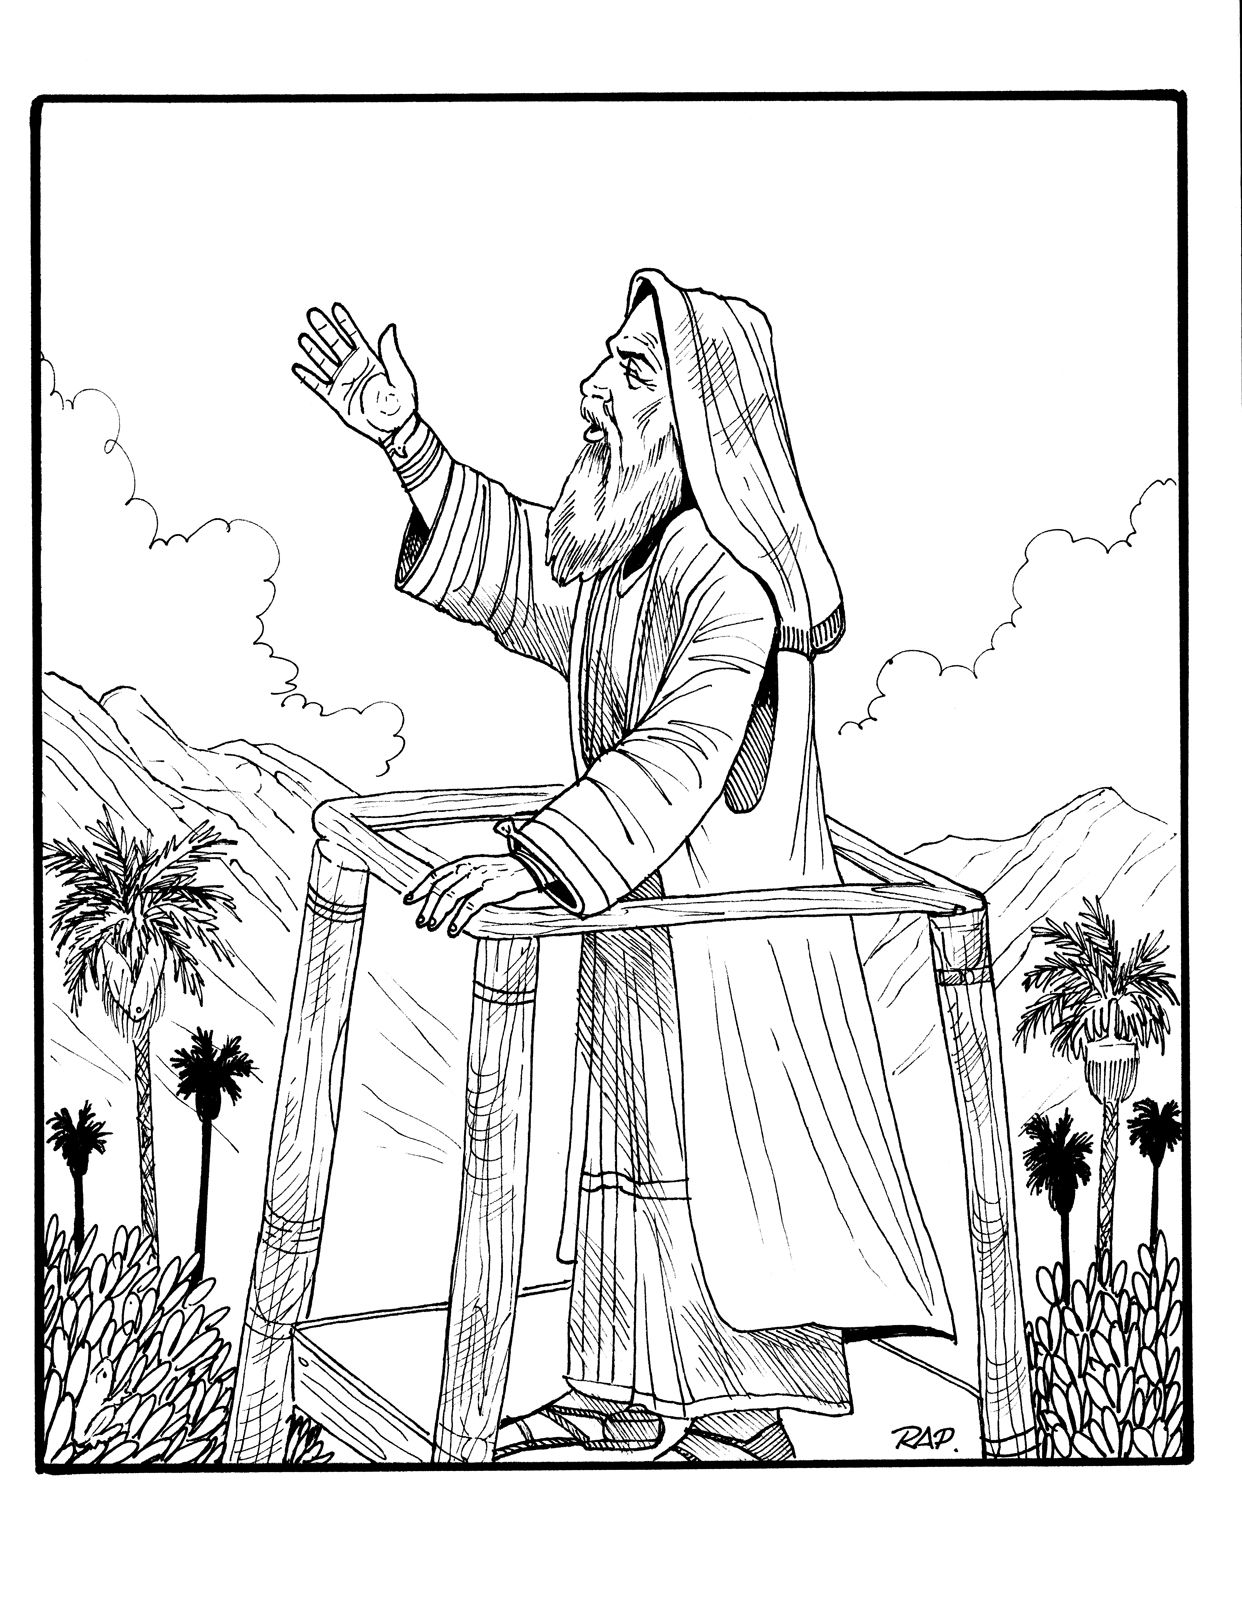 King Benjamin gives his sermon from the tower. #ldsprimary  http://www.lds.org/media-library/images/primary/line-art